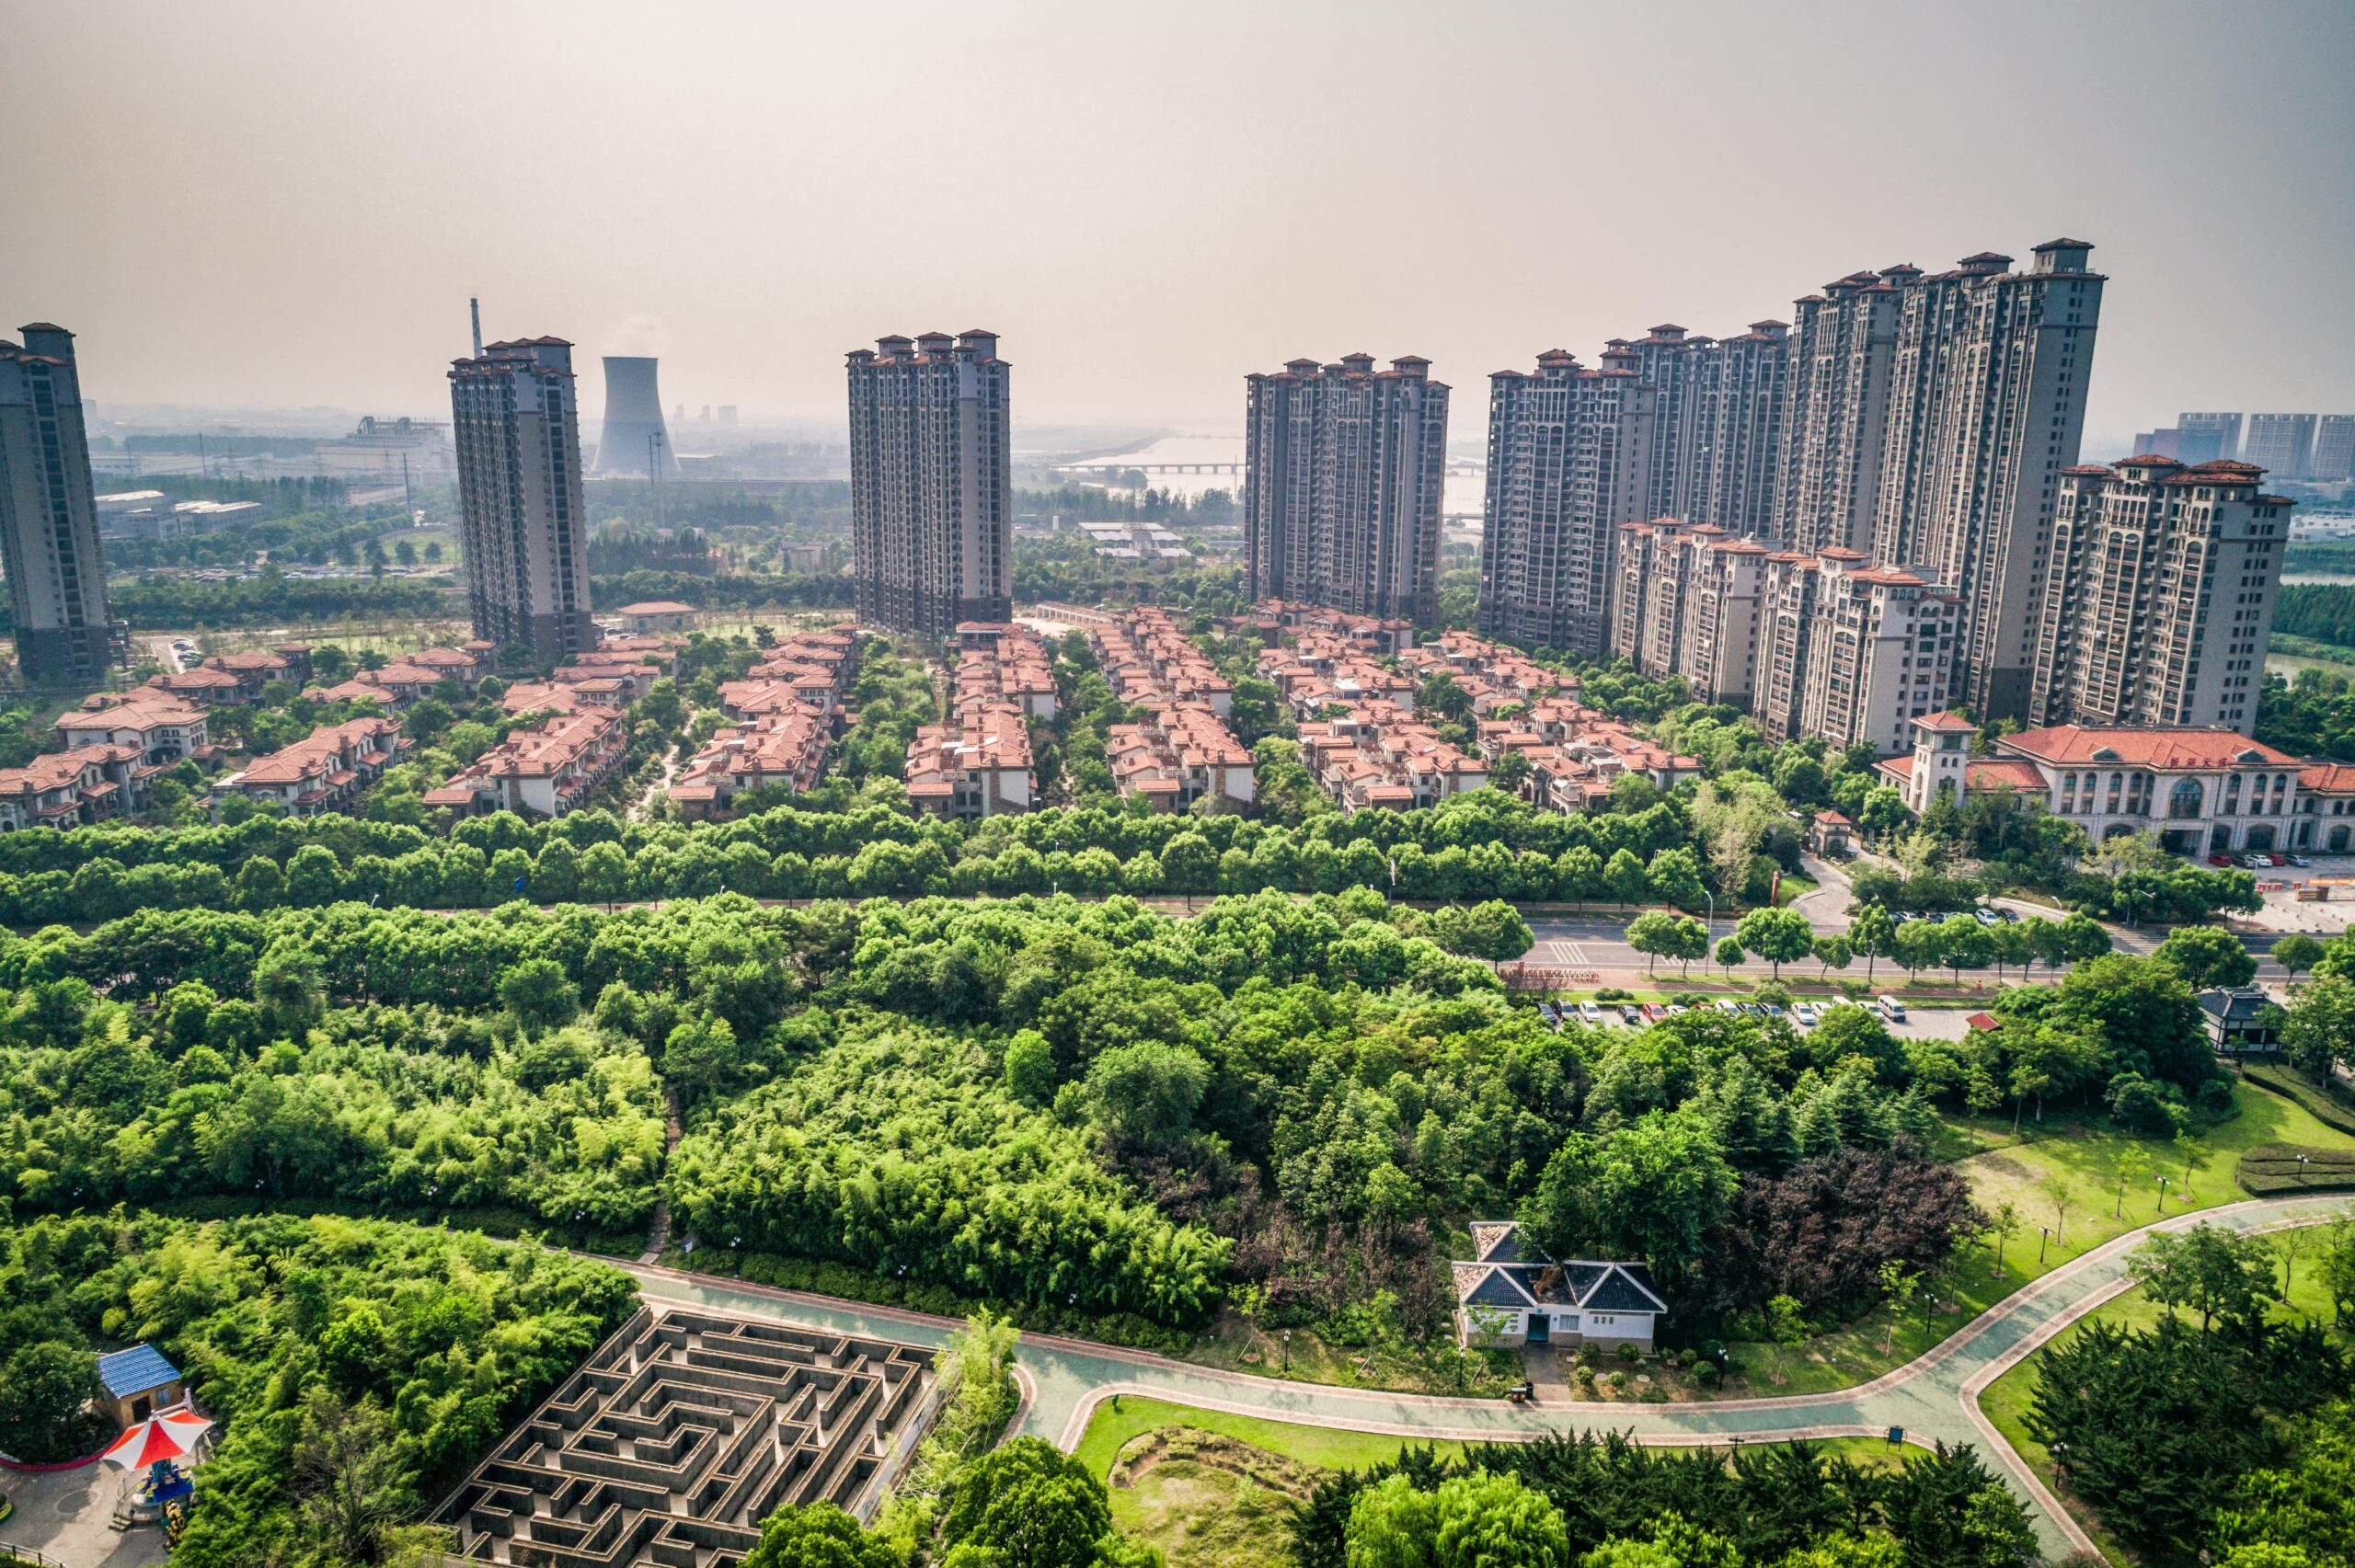 https://doradcy365.pl/wp-content/uploads/2021/02/chinese-city-min-scaled.jpg